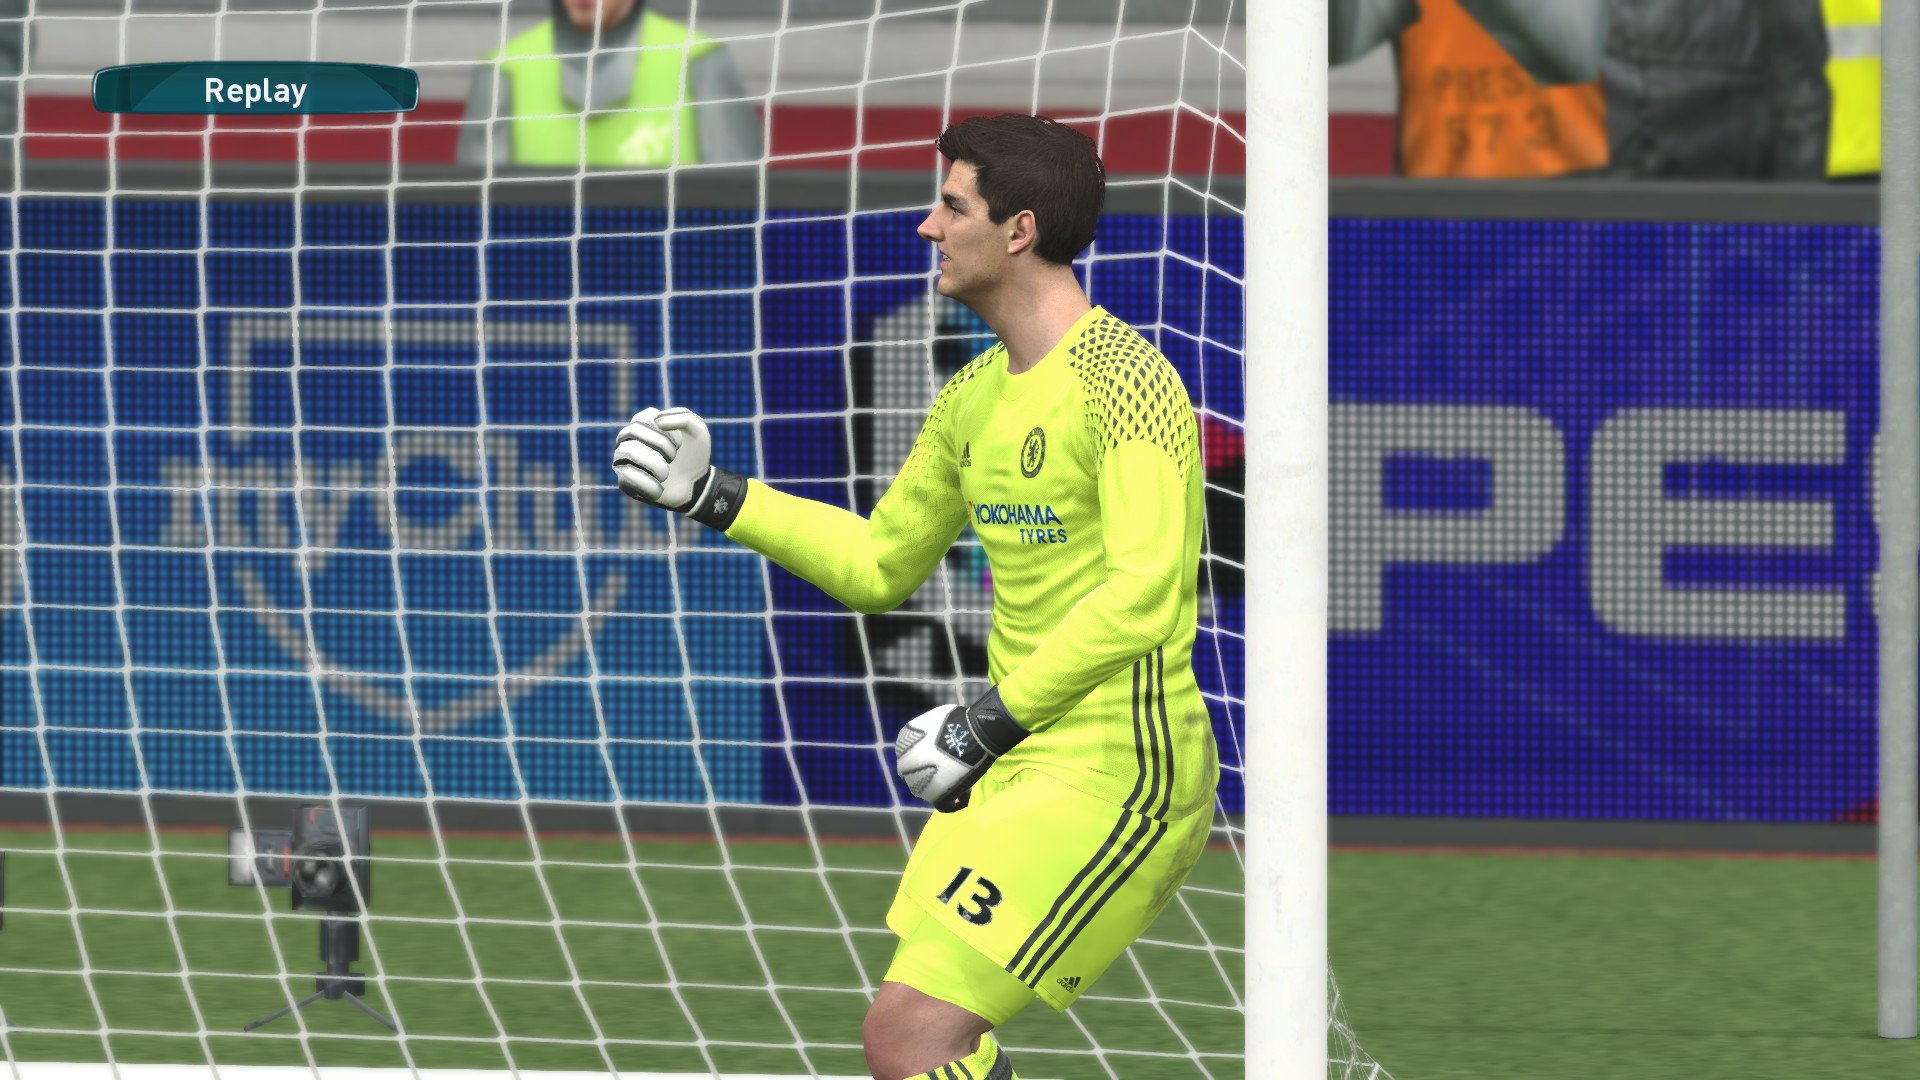 Goalkeeper tutorial - pes-news com